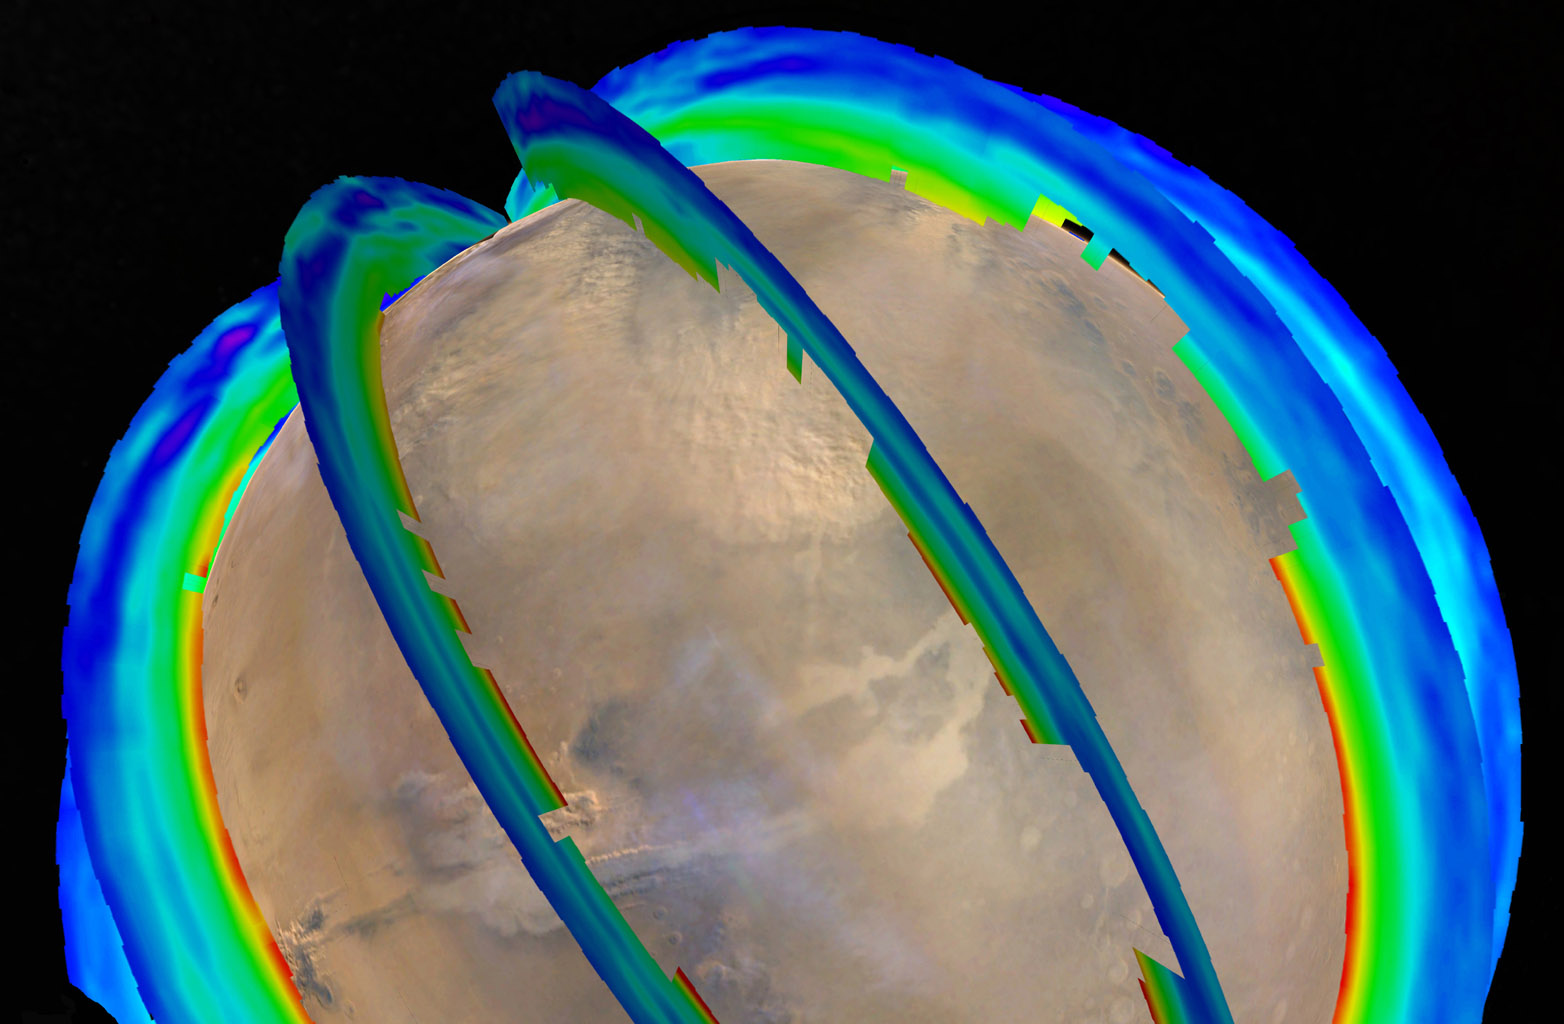 This graphic overlays Martian atmospheric temperature data as curtains over an image of Mars taken during a regional dust storm. The temperature profiles extend from the surface to about 50 miles (80 kilometers) up. Temperatures are color coded, ranging from minus 243 degrees Fahrenheit (minus 153 degrees Celsius) where coded purple to minus 9 F (minus 23 C) where coded red.